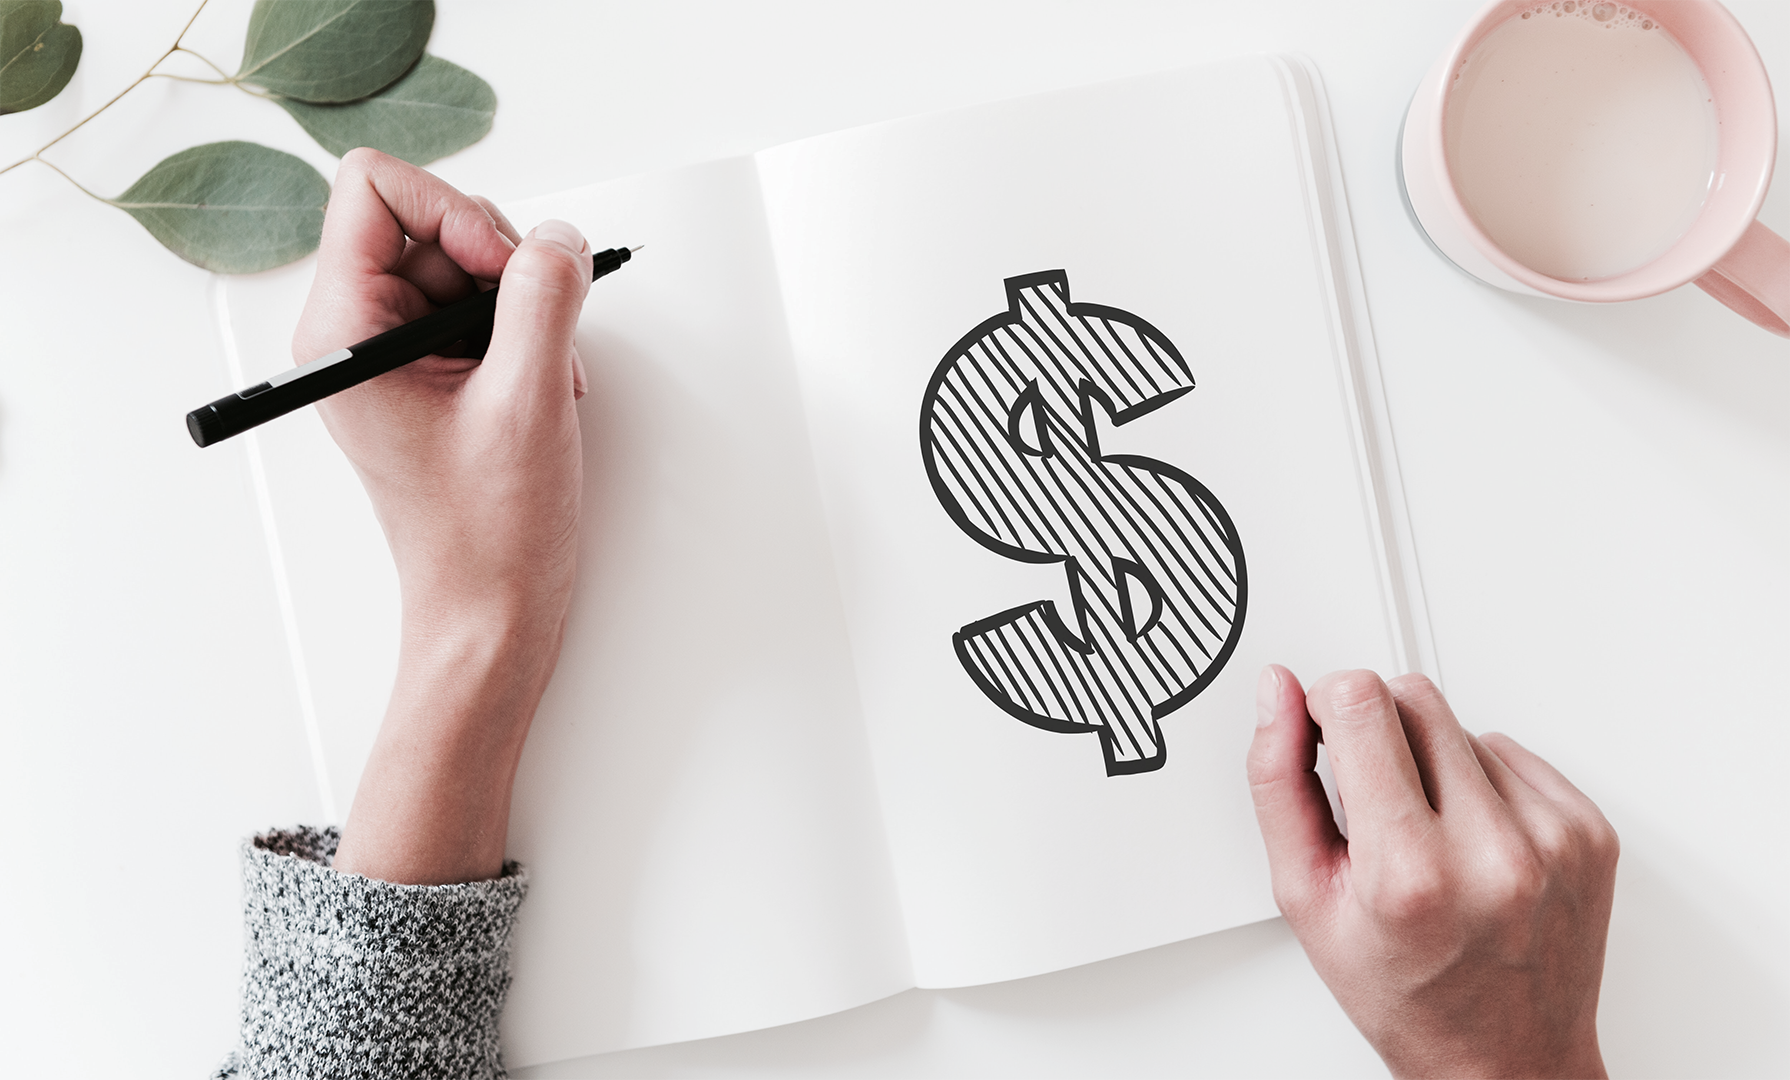 5 Questions To Ask Yourself About Your Finances